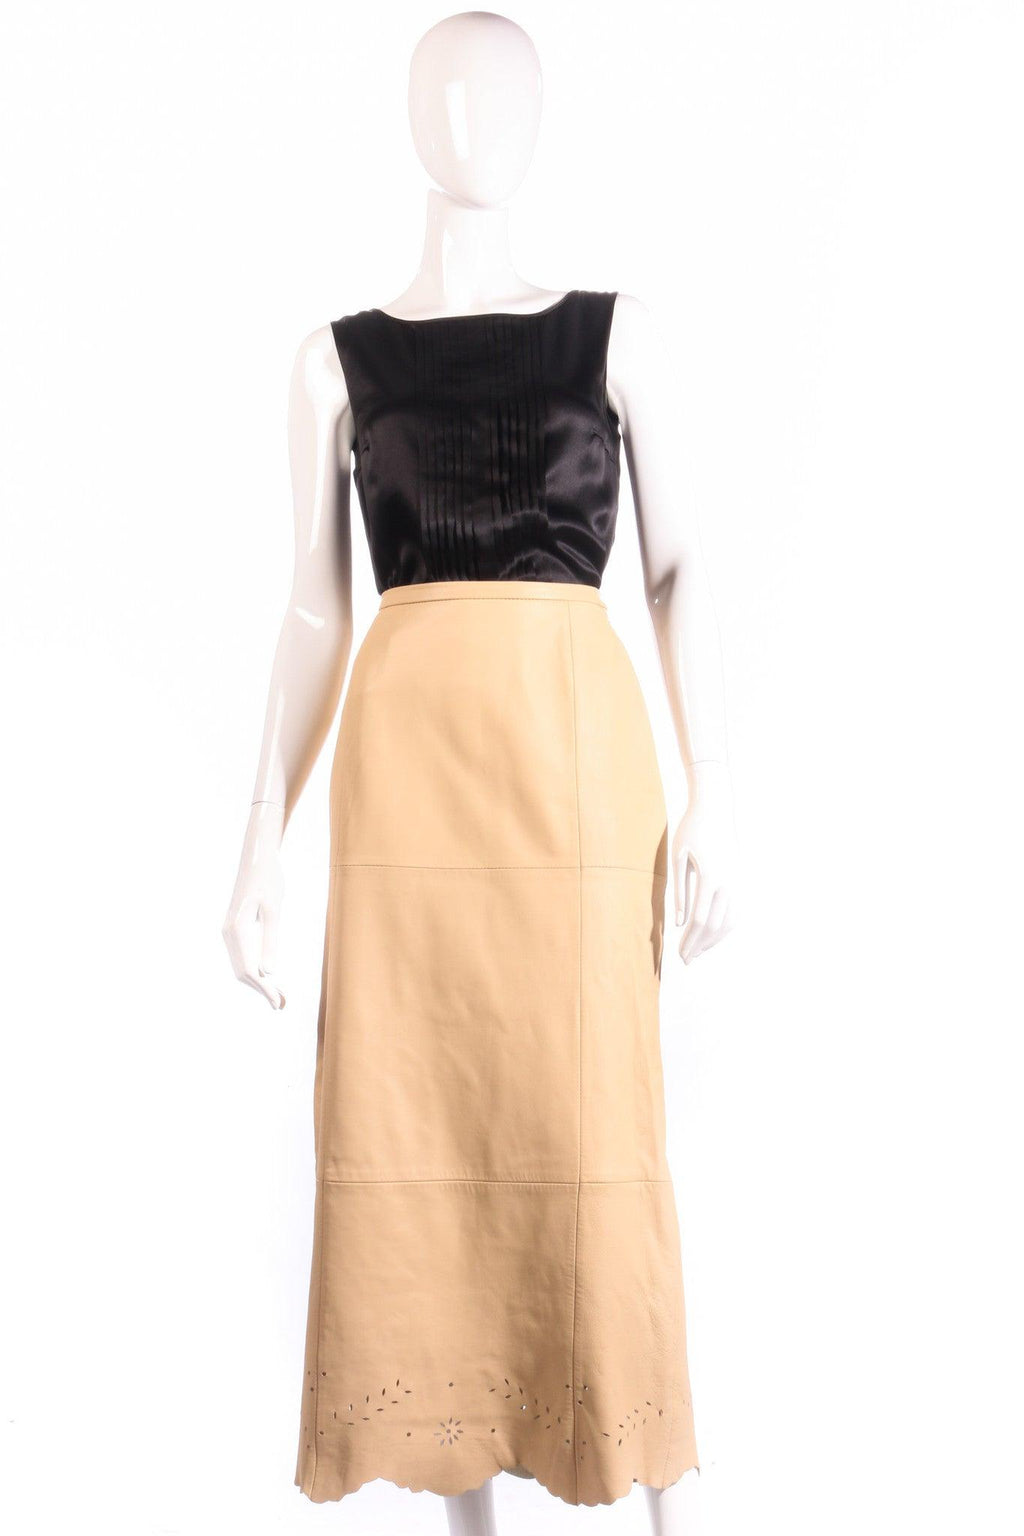 Prestige beige leather skirt with cut out detail size 12